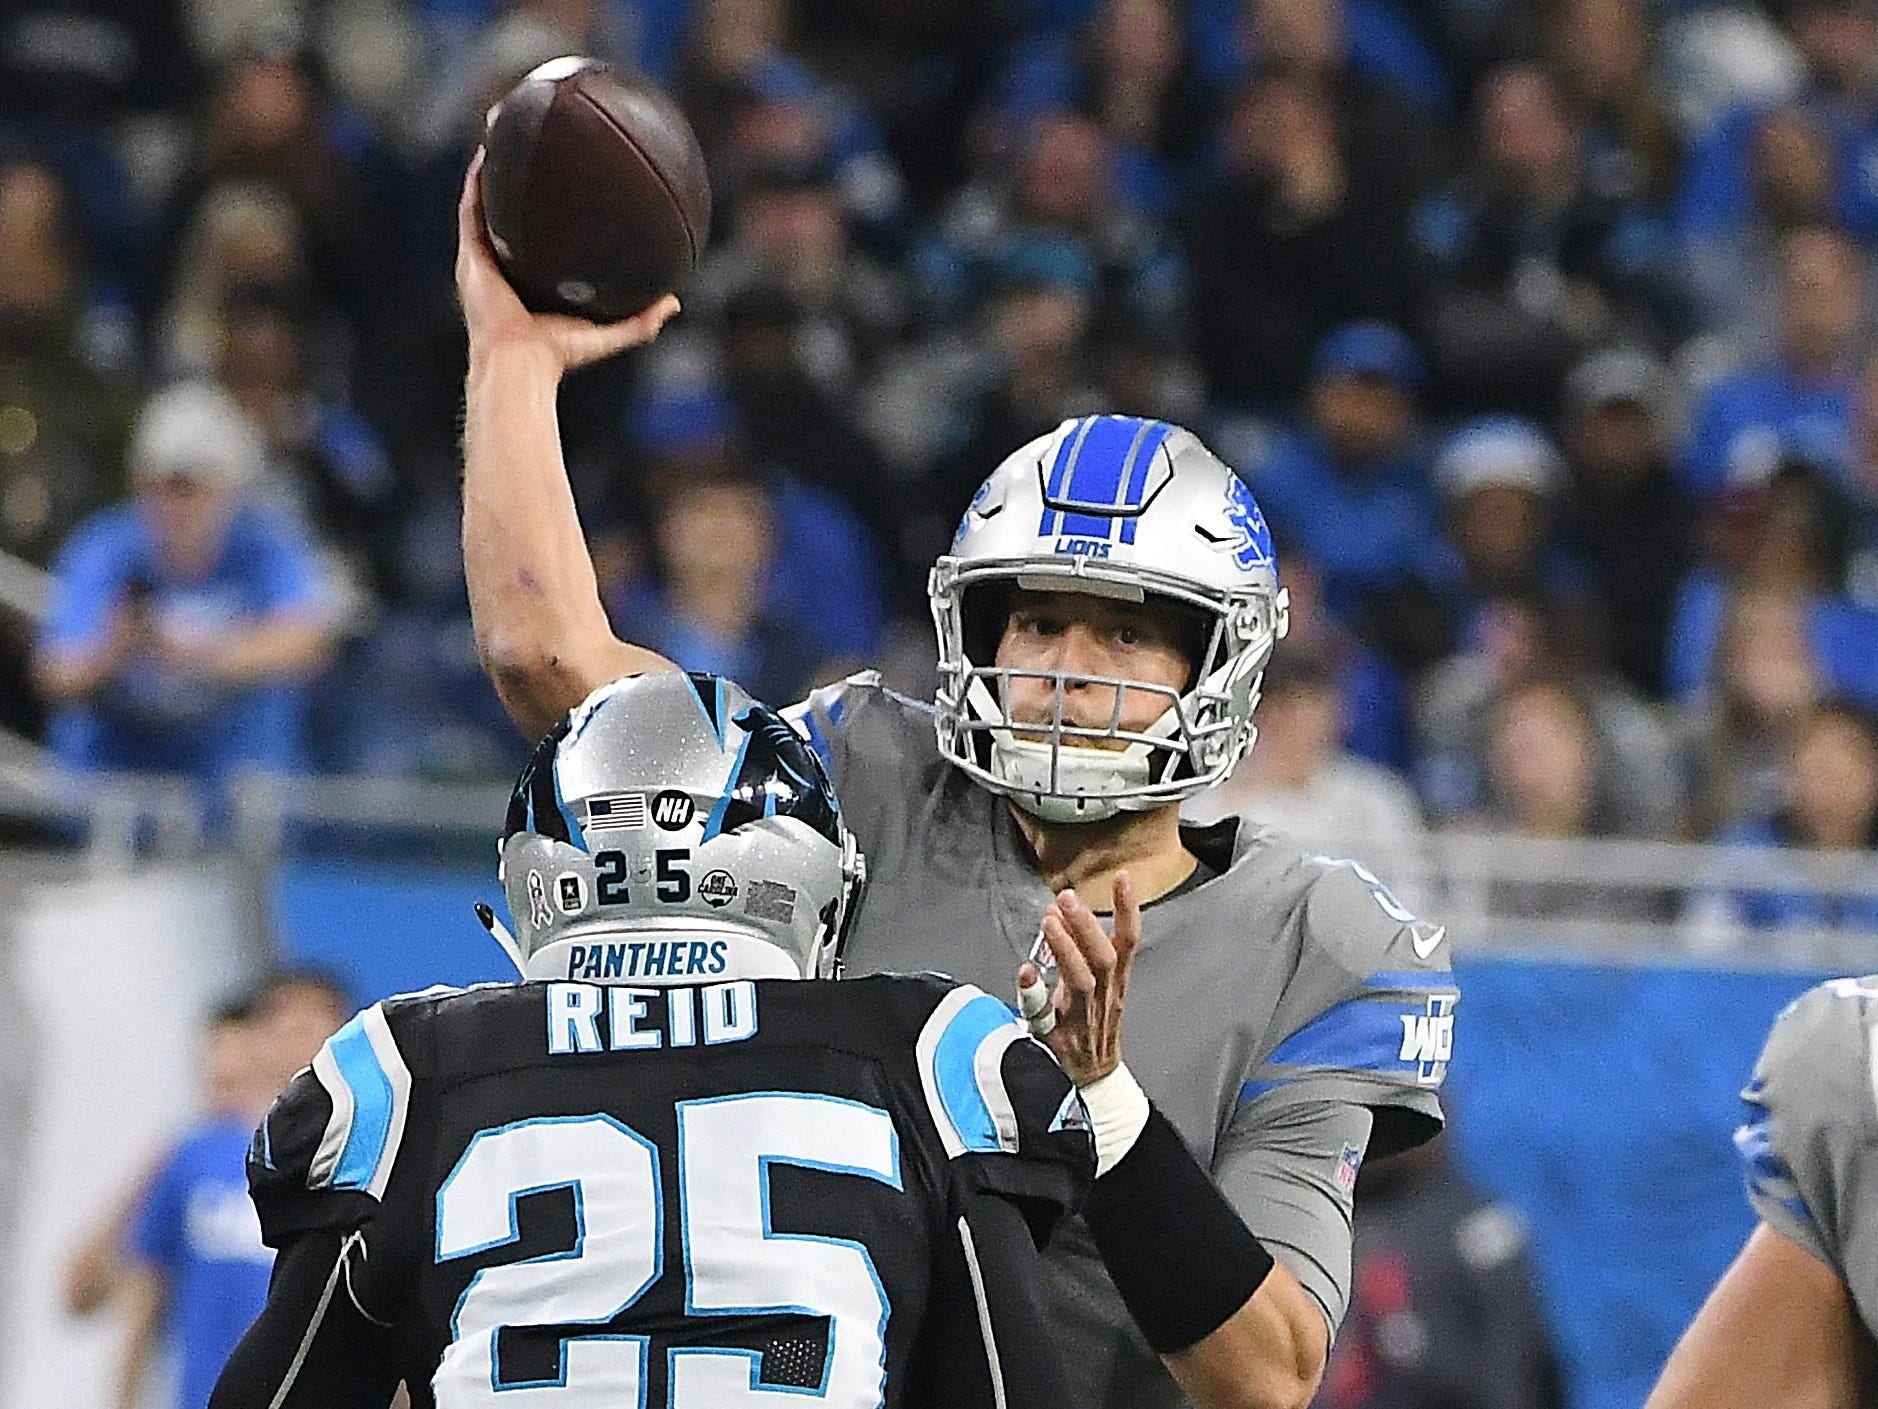 Lions quarterback Matthew Stafford throws in the second quarter.